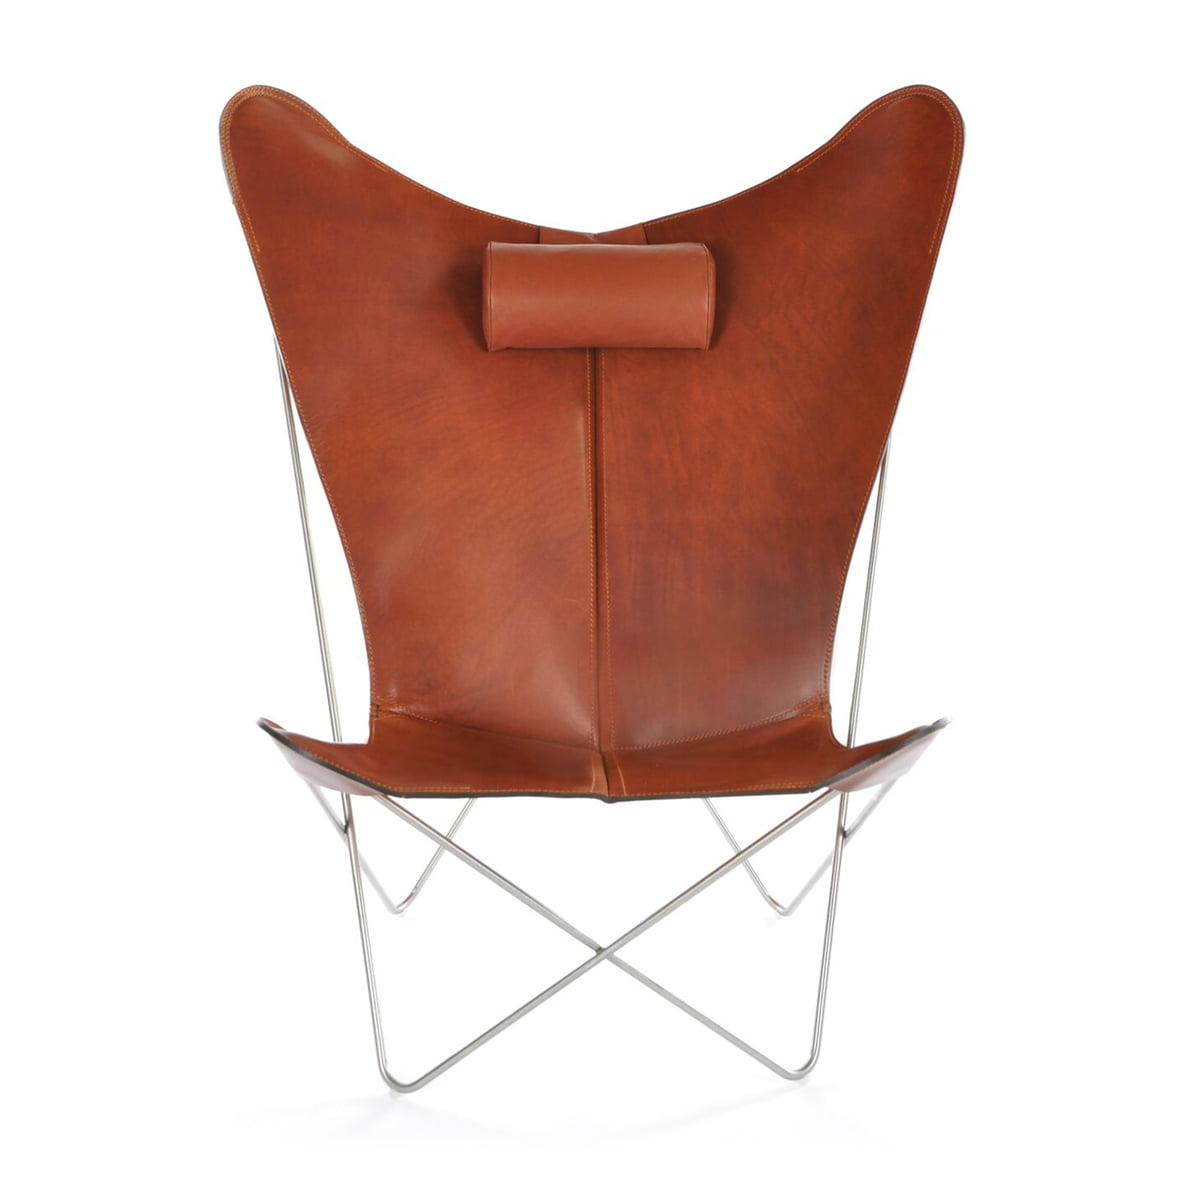 KS Chair by Ox Denmarq | Connox Shop